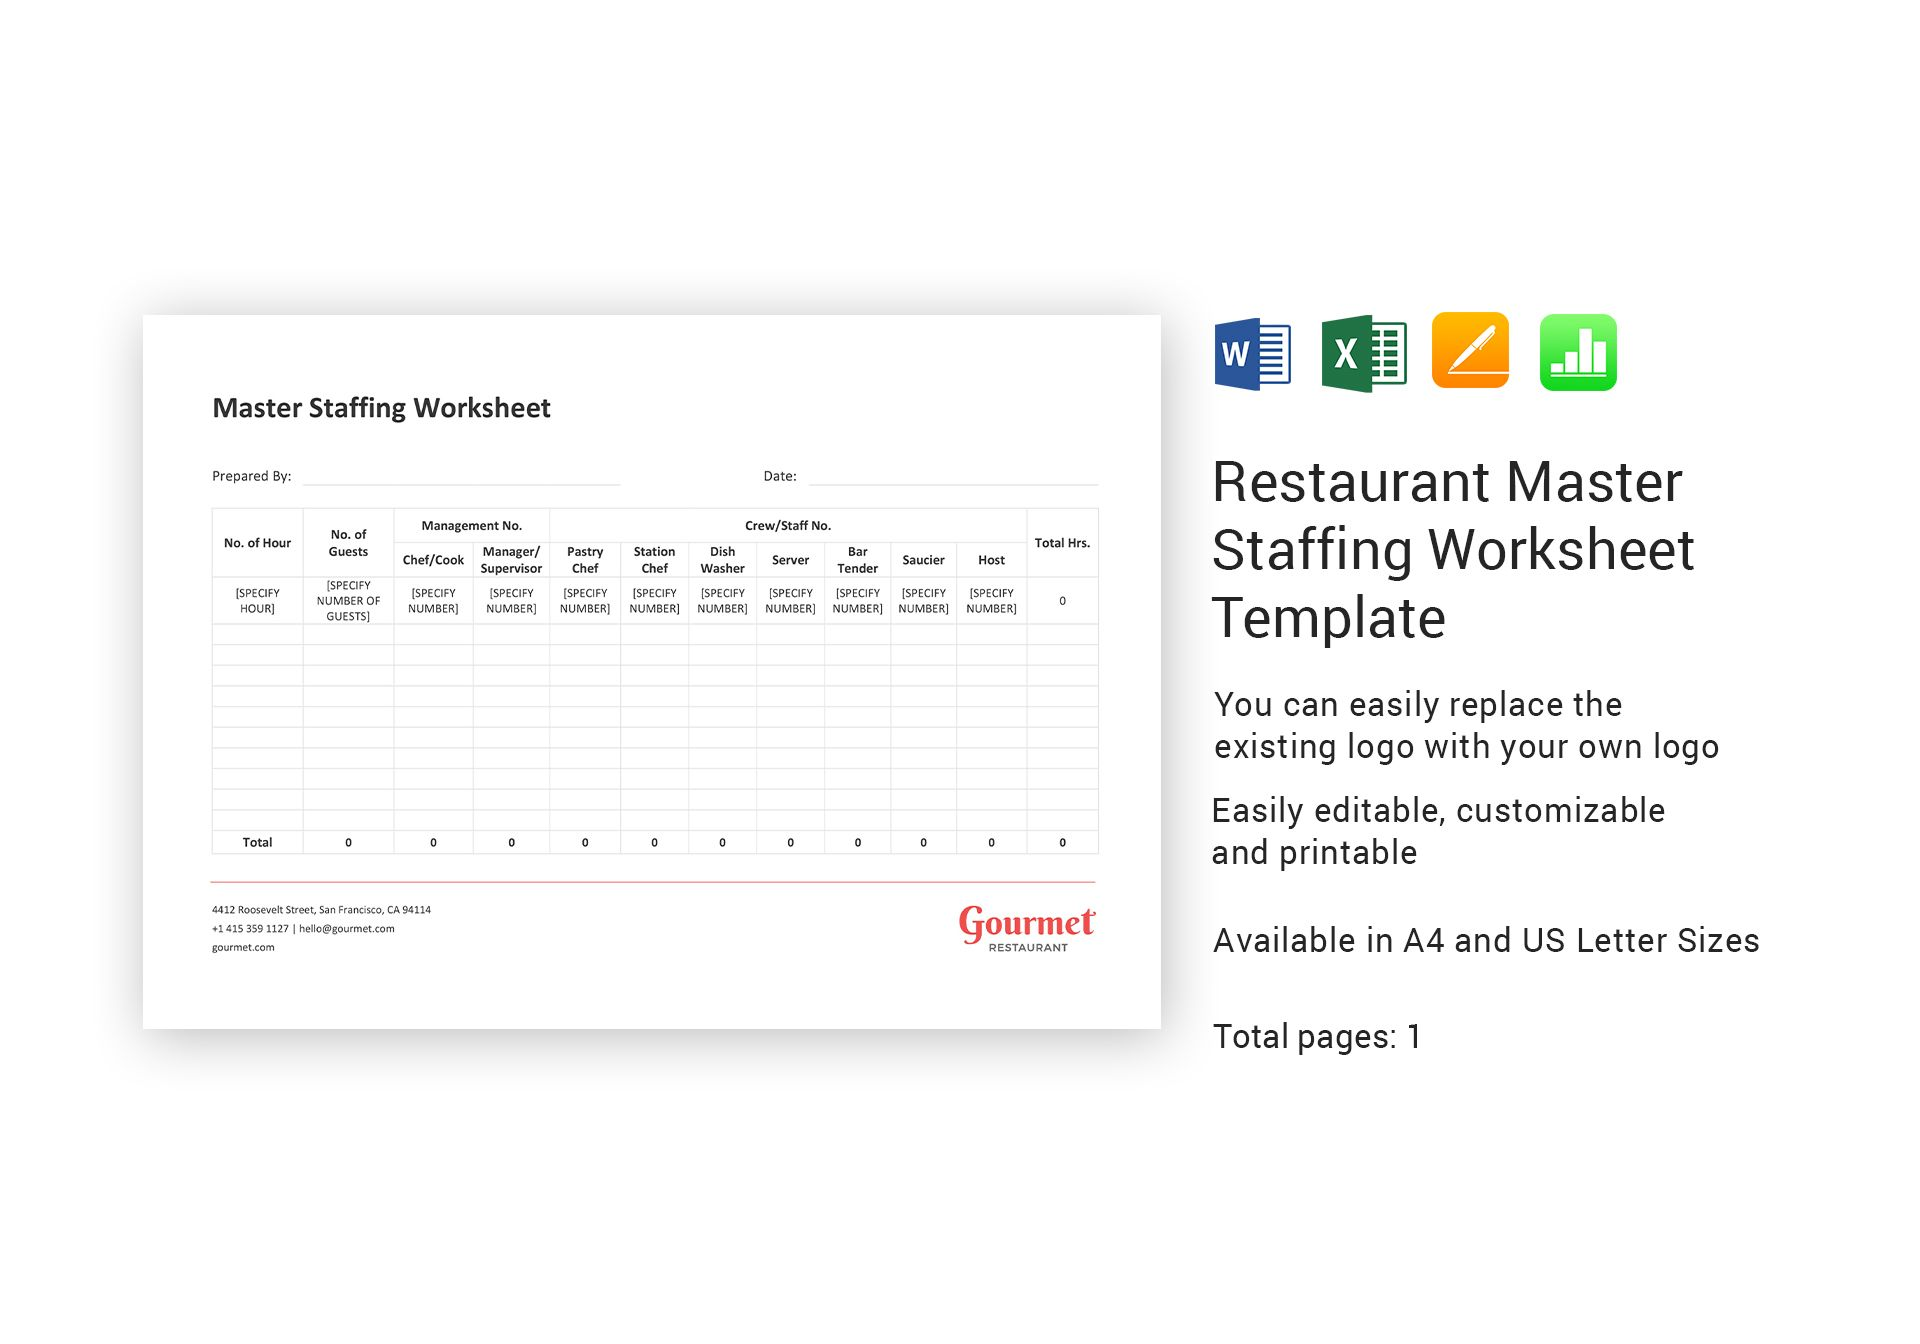 Restaurant Master Staffing Worksheet